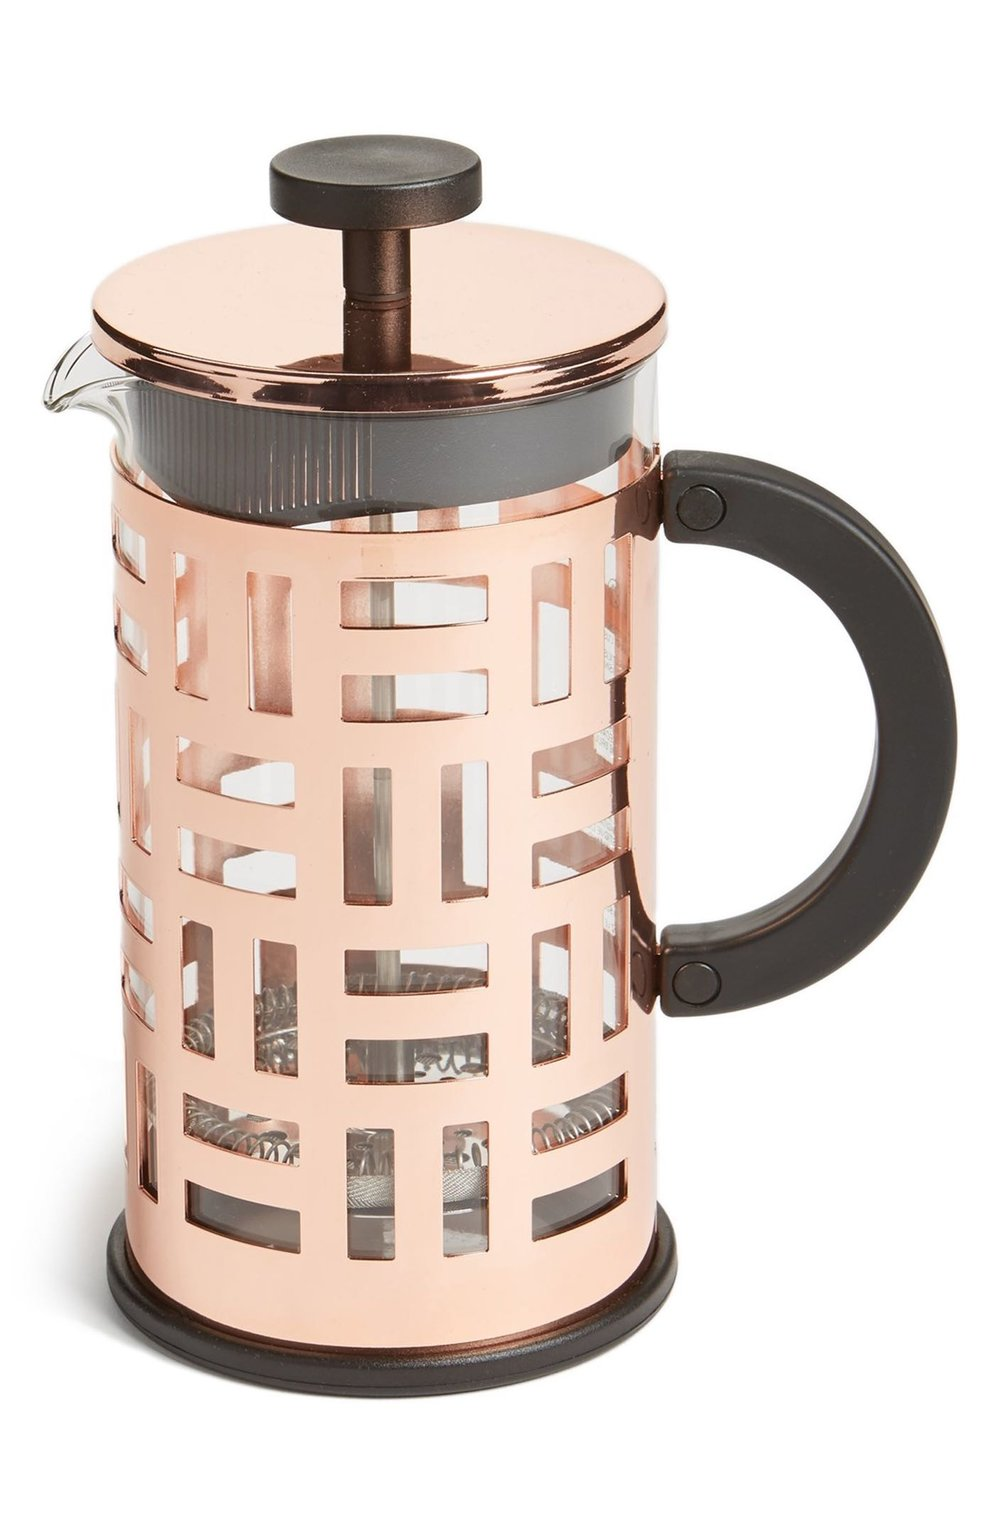 8-cup French Press